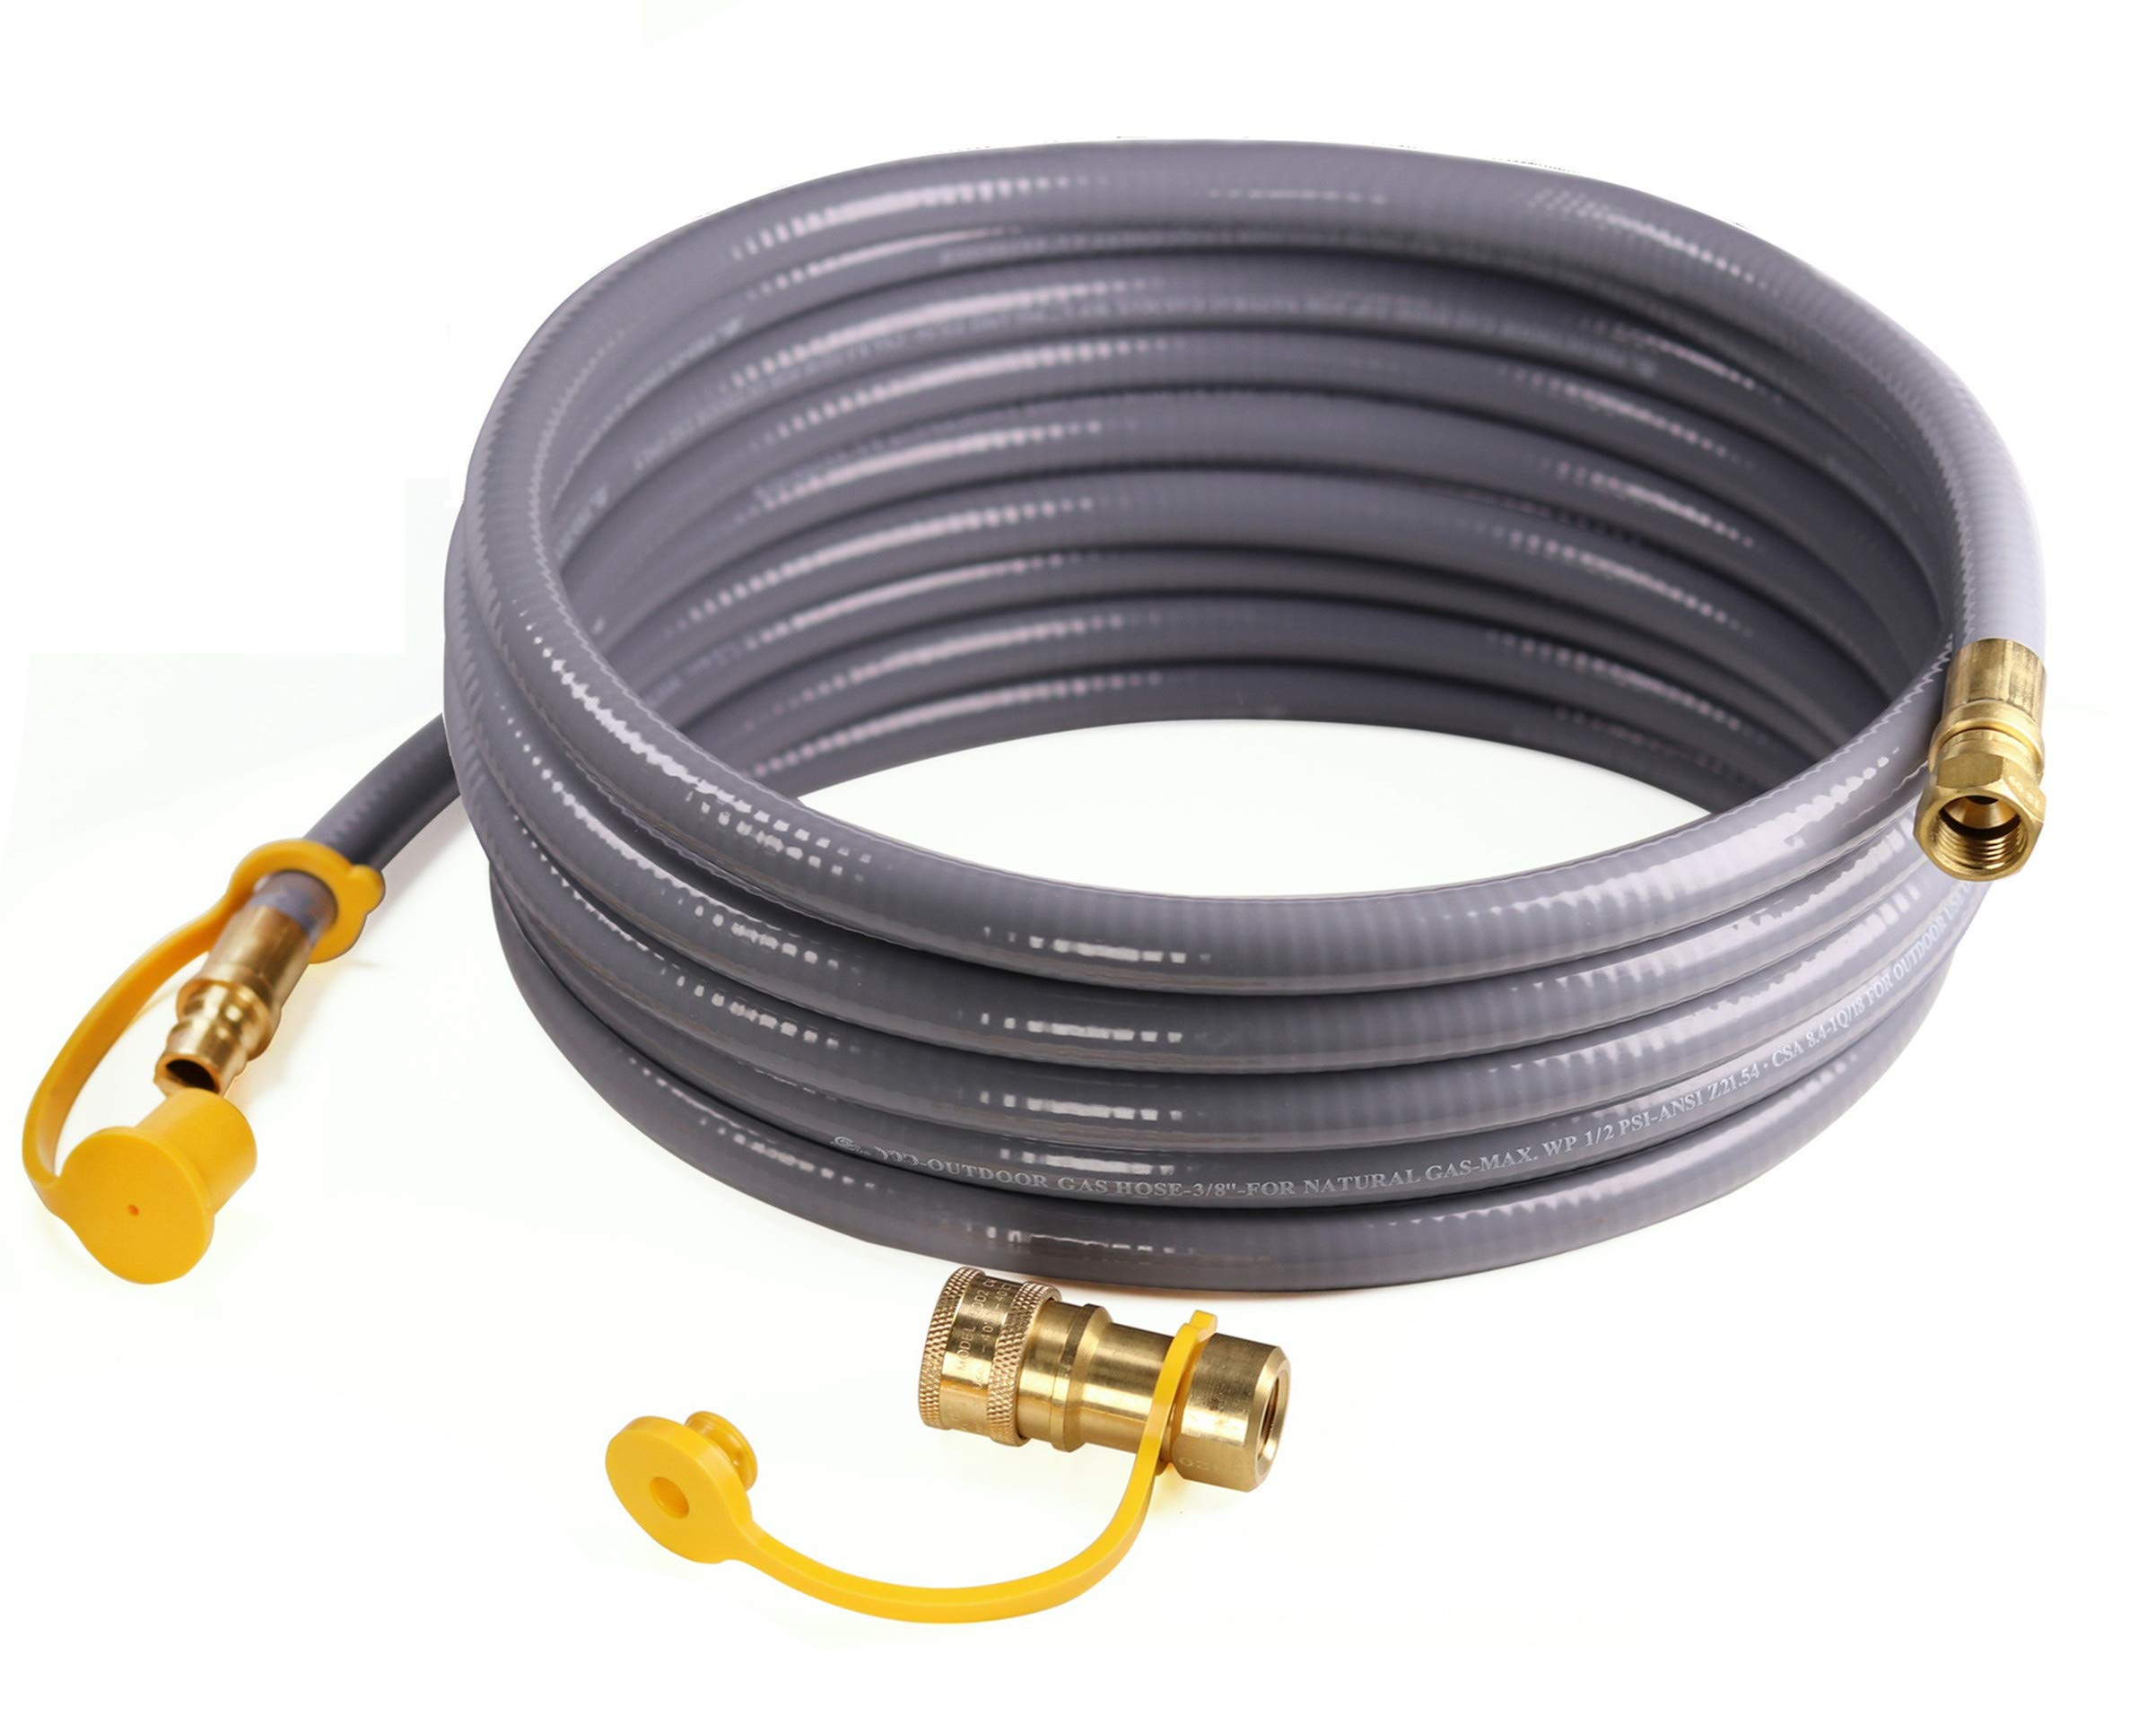 DOZYANT 12 Feet 3/8 inch ID Natural Gas Grill Hose with Quick Connect Propane Gas Hose Assembly for Low Pressure Appliance -3/8 Female Pipe Thread x 3/8 Male Flare Quick Disconnect - CSA Certified by DOZYANT